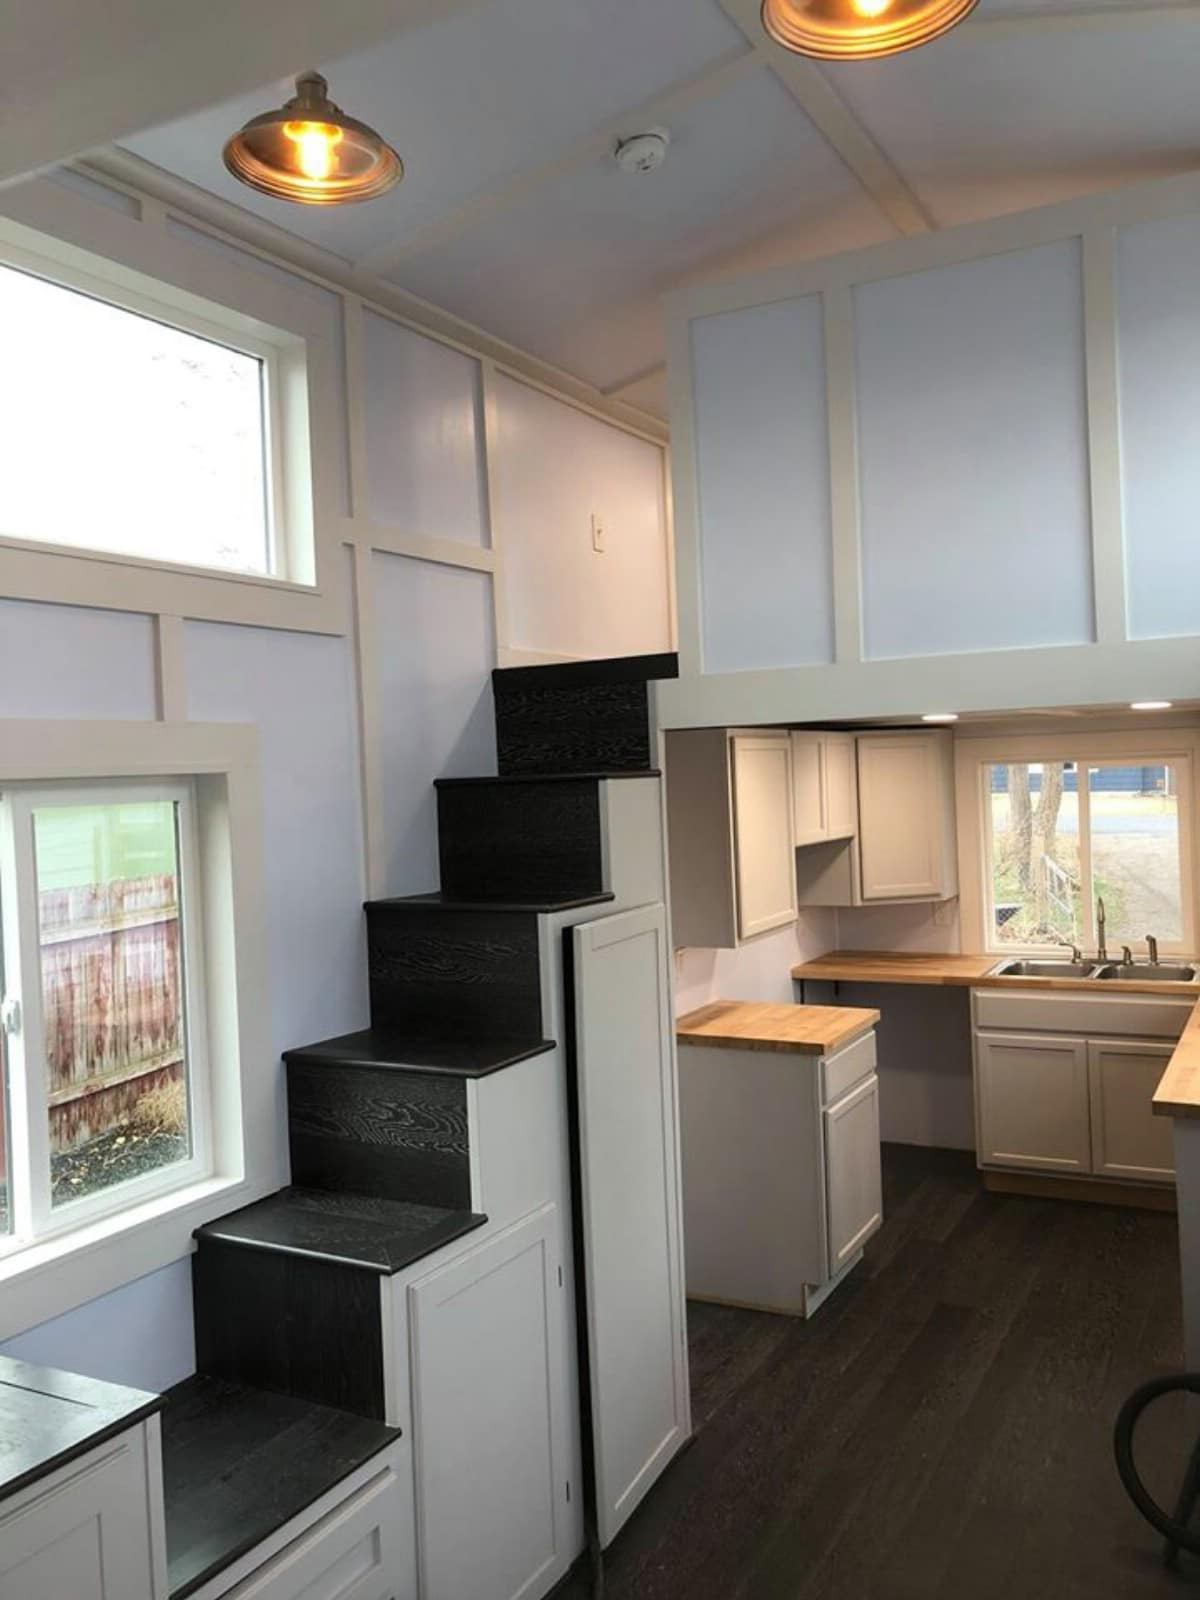 Stairs to loft off kitchen